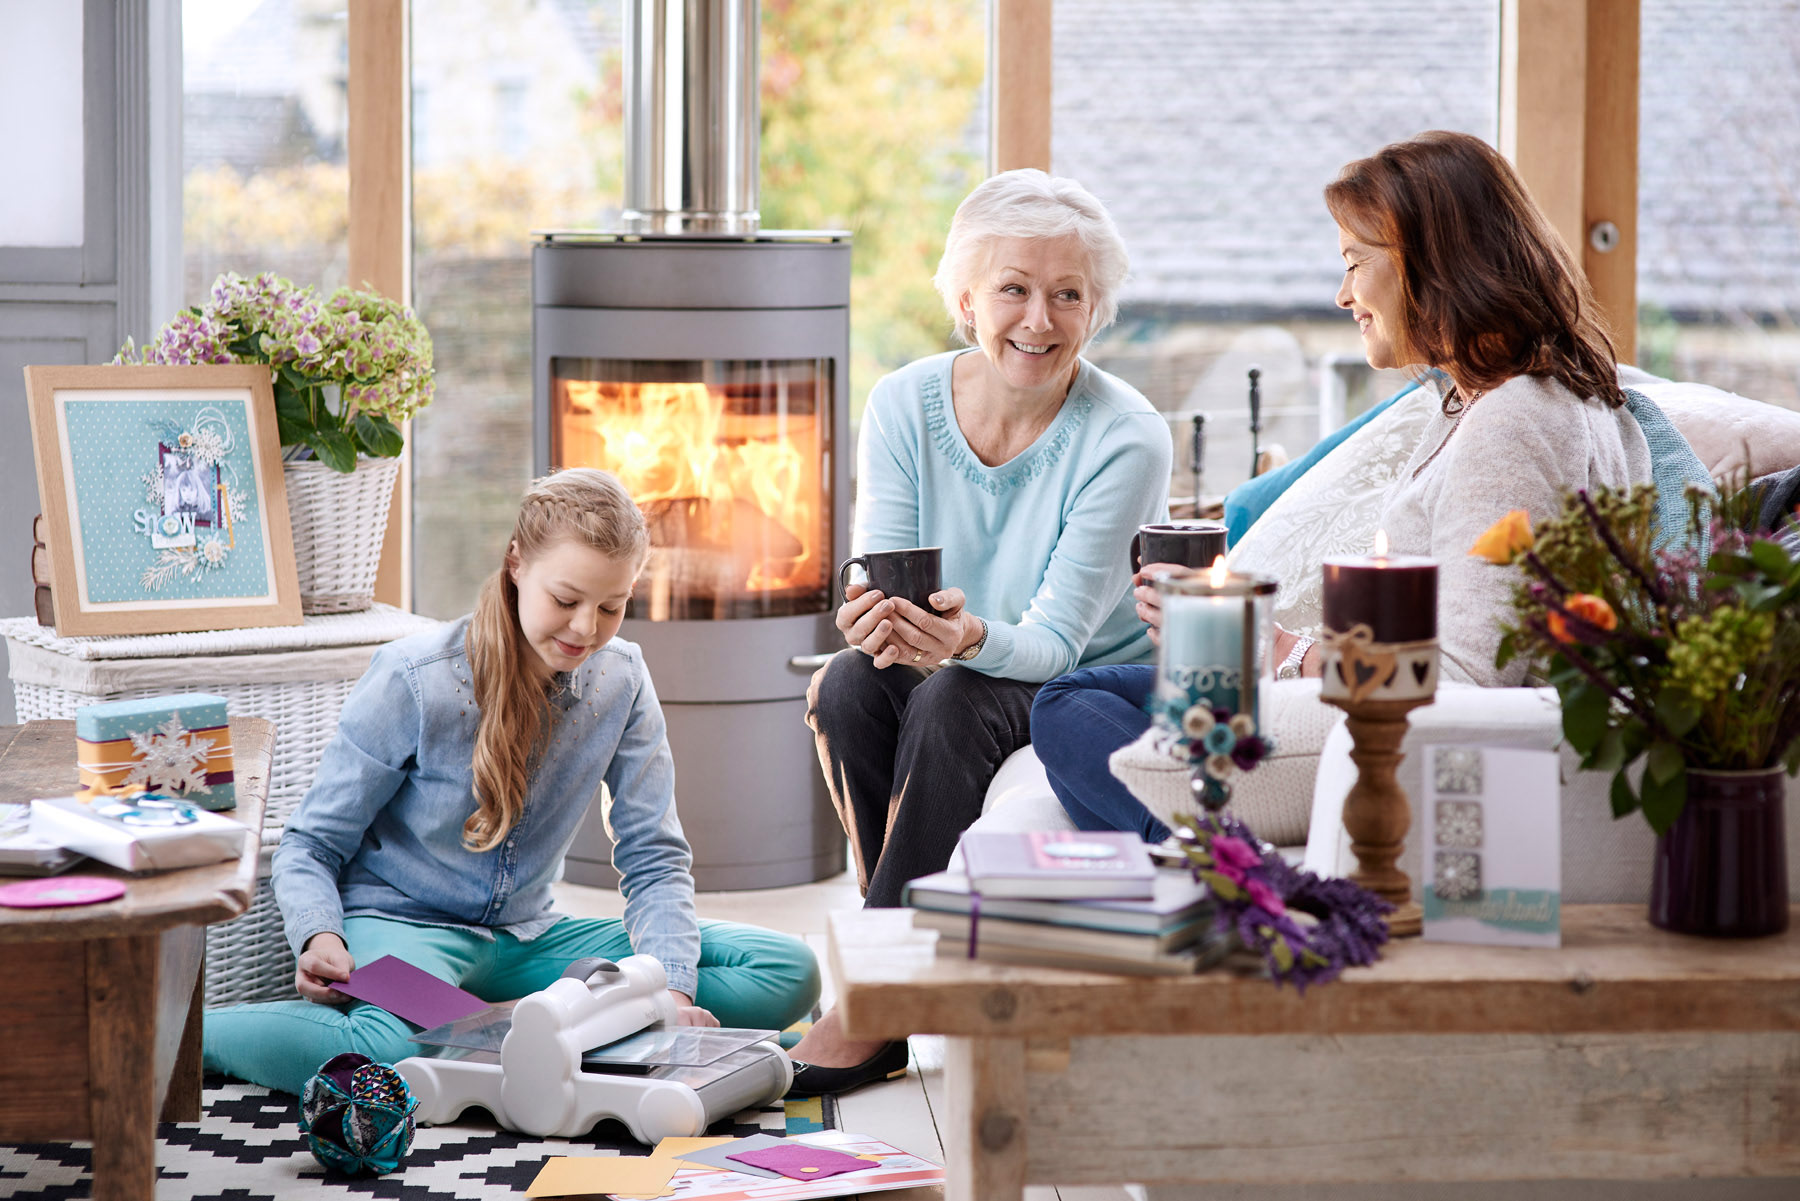 A family sitting by the fire in the living room